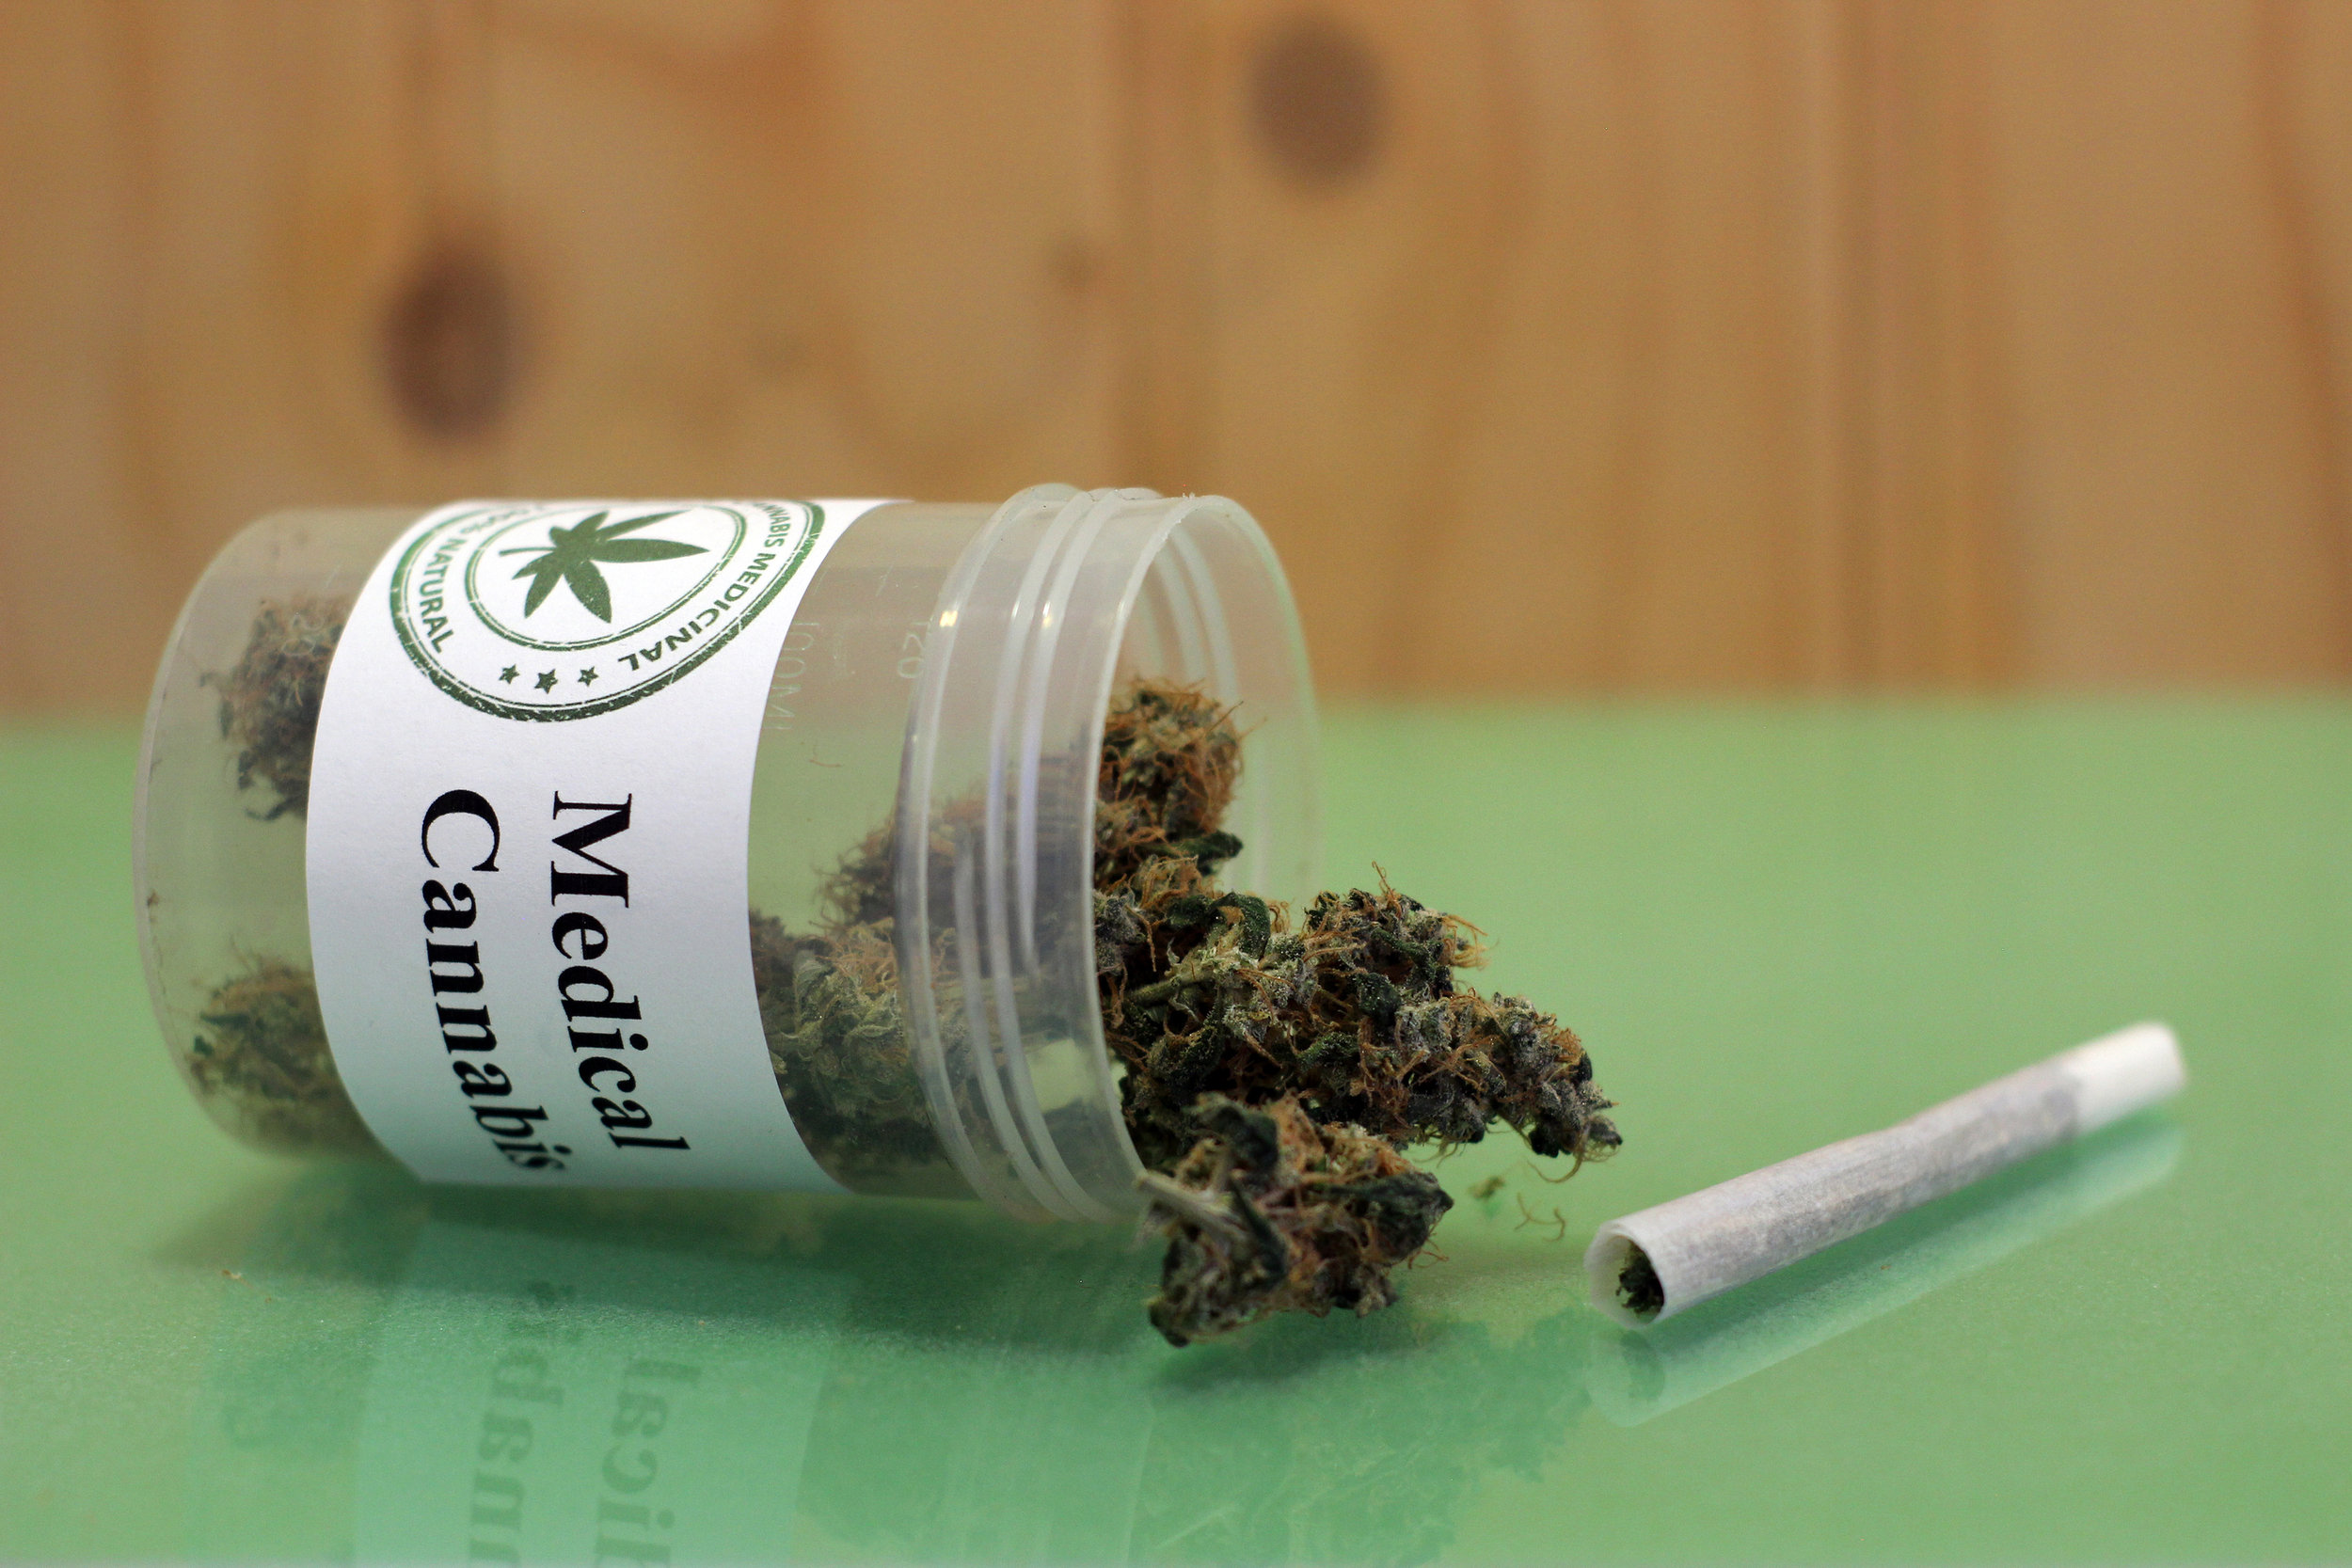 18 Things Medical Marijuana Does (Because It's Not About